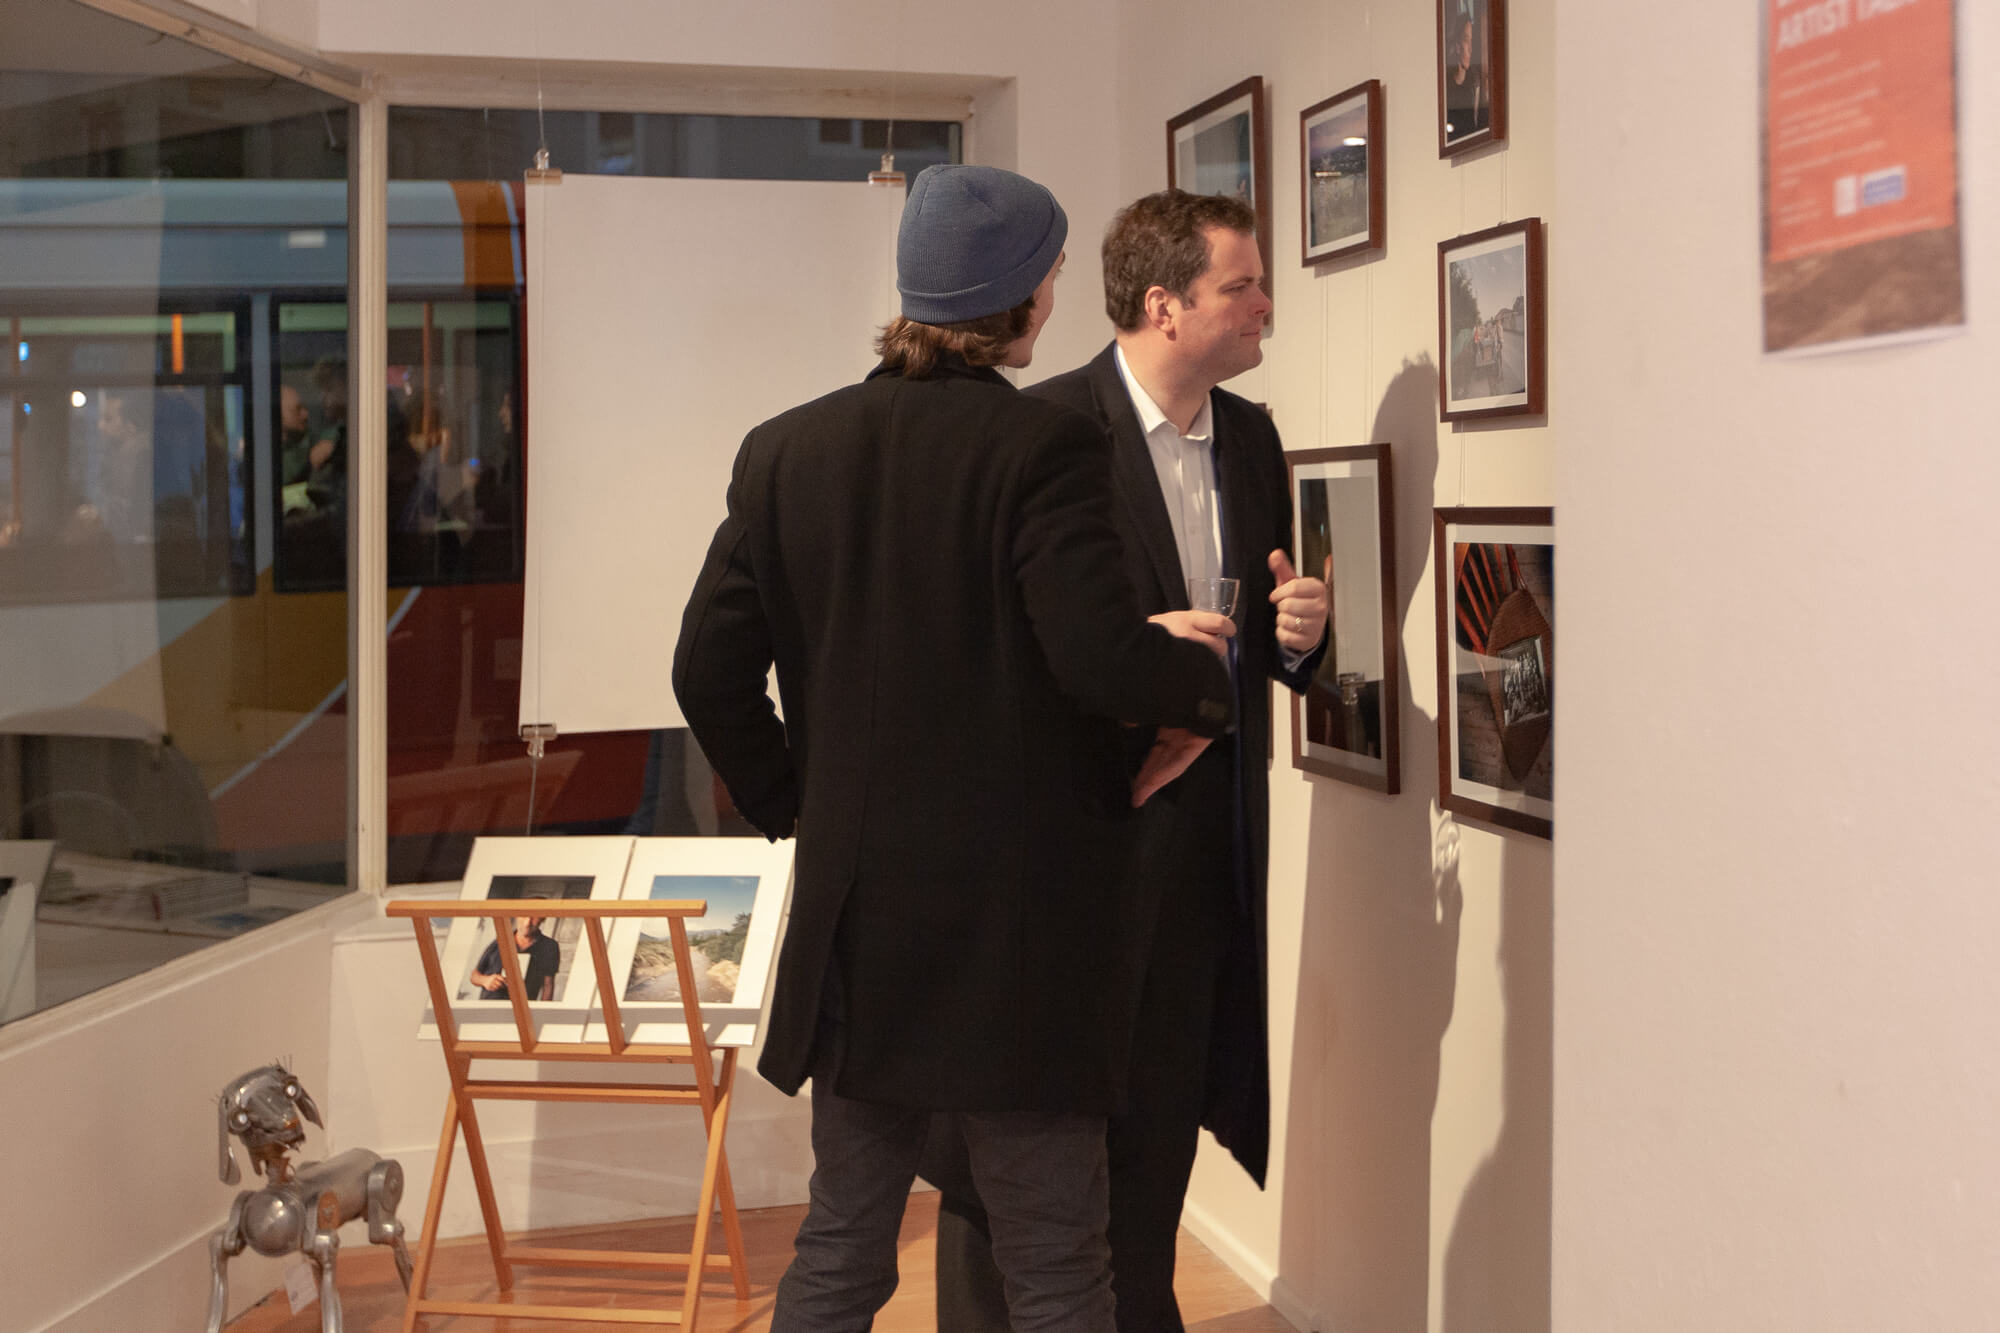 The South West Collective of photography visual storytelling photography exhibition MP for Torbay Kevin Foster and Steffen Junghans